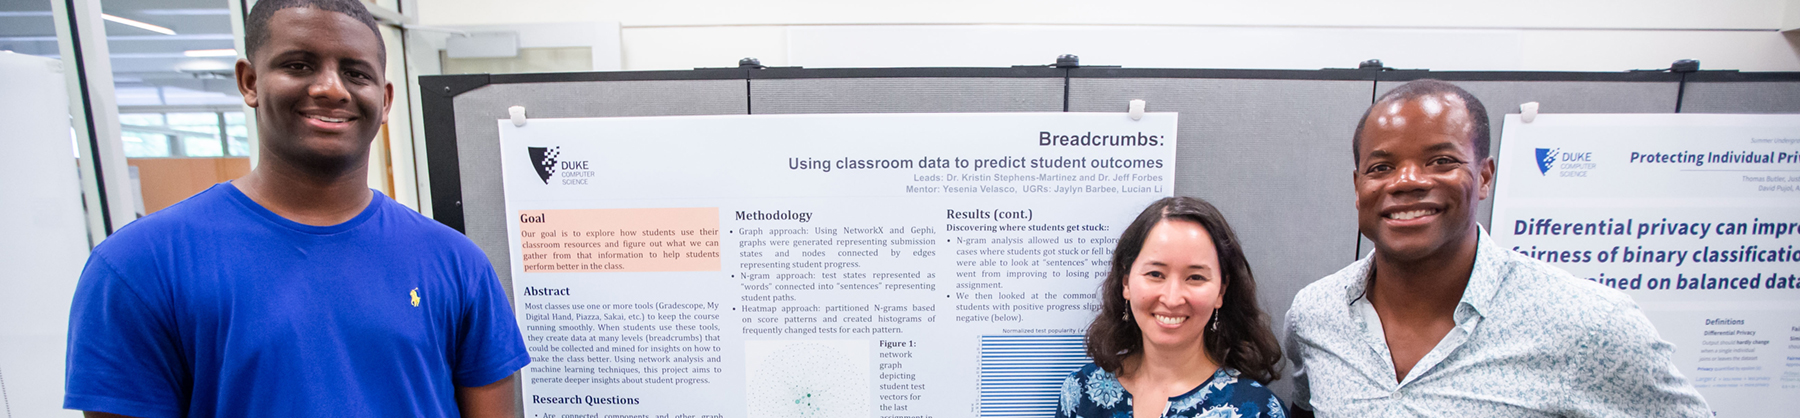 Ugrad Summer 2019 Research-Breadcrumbs Project Poster